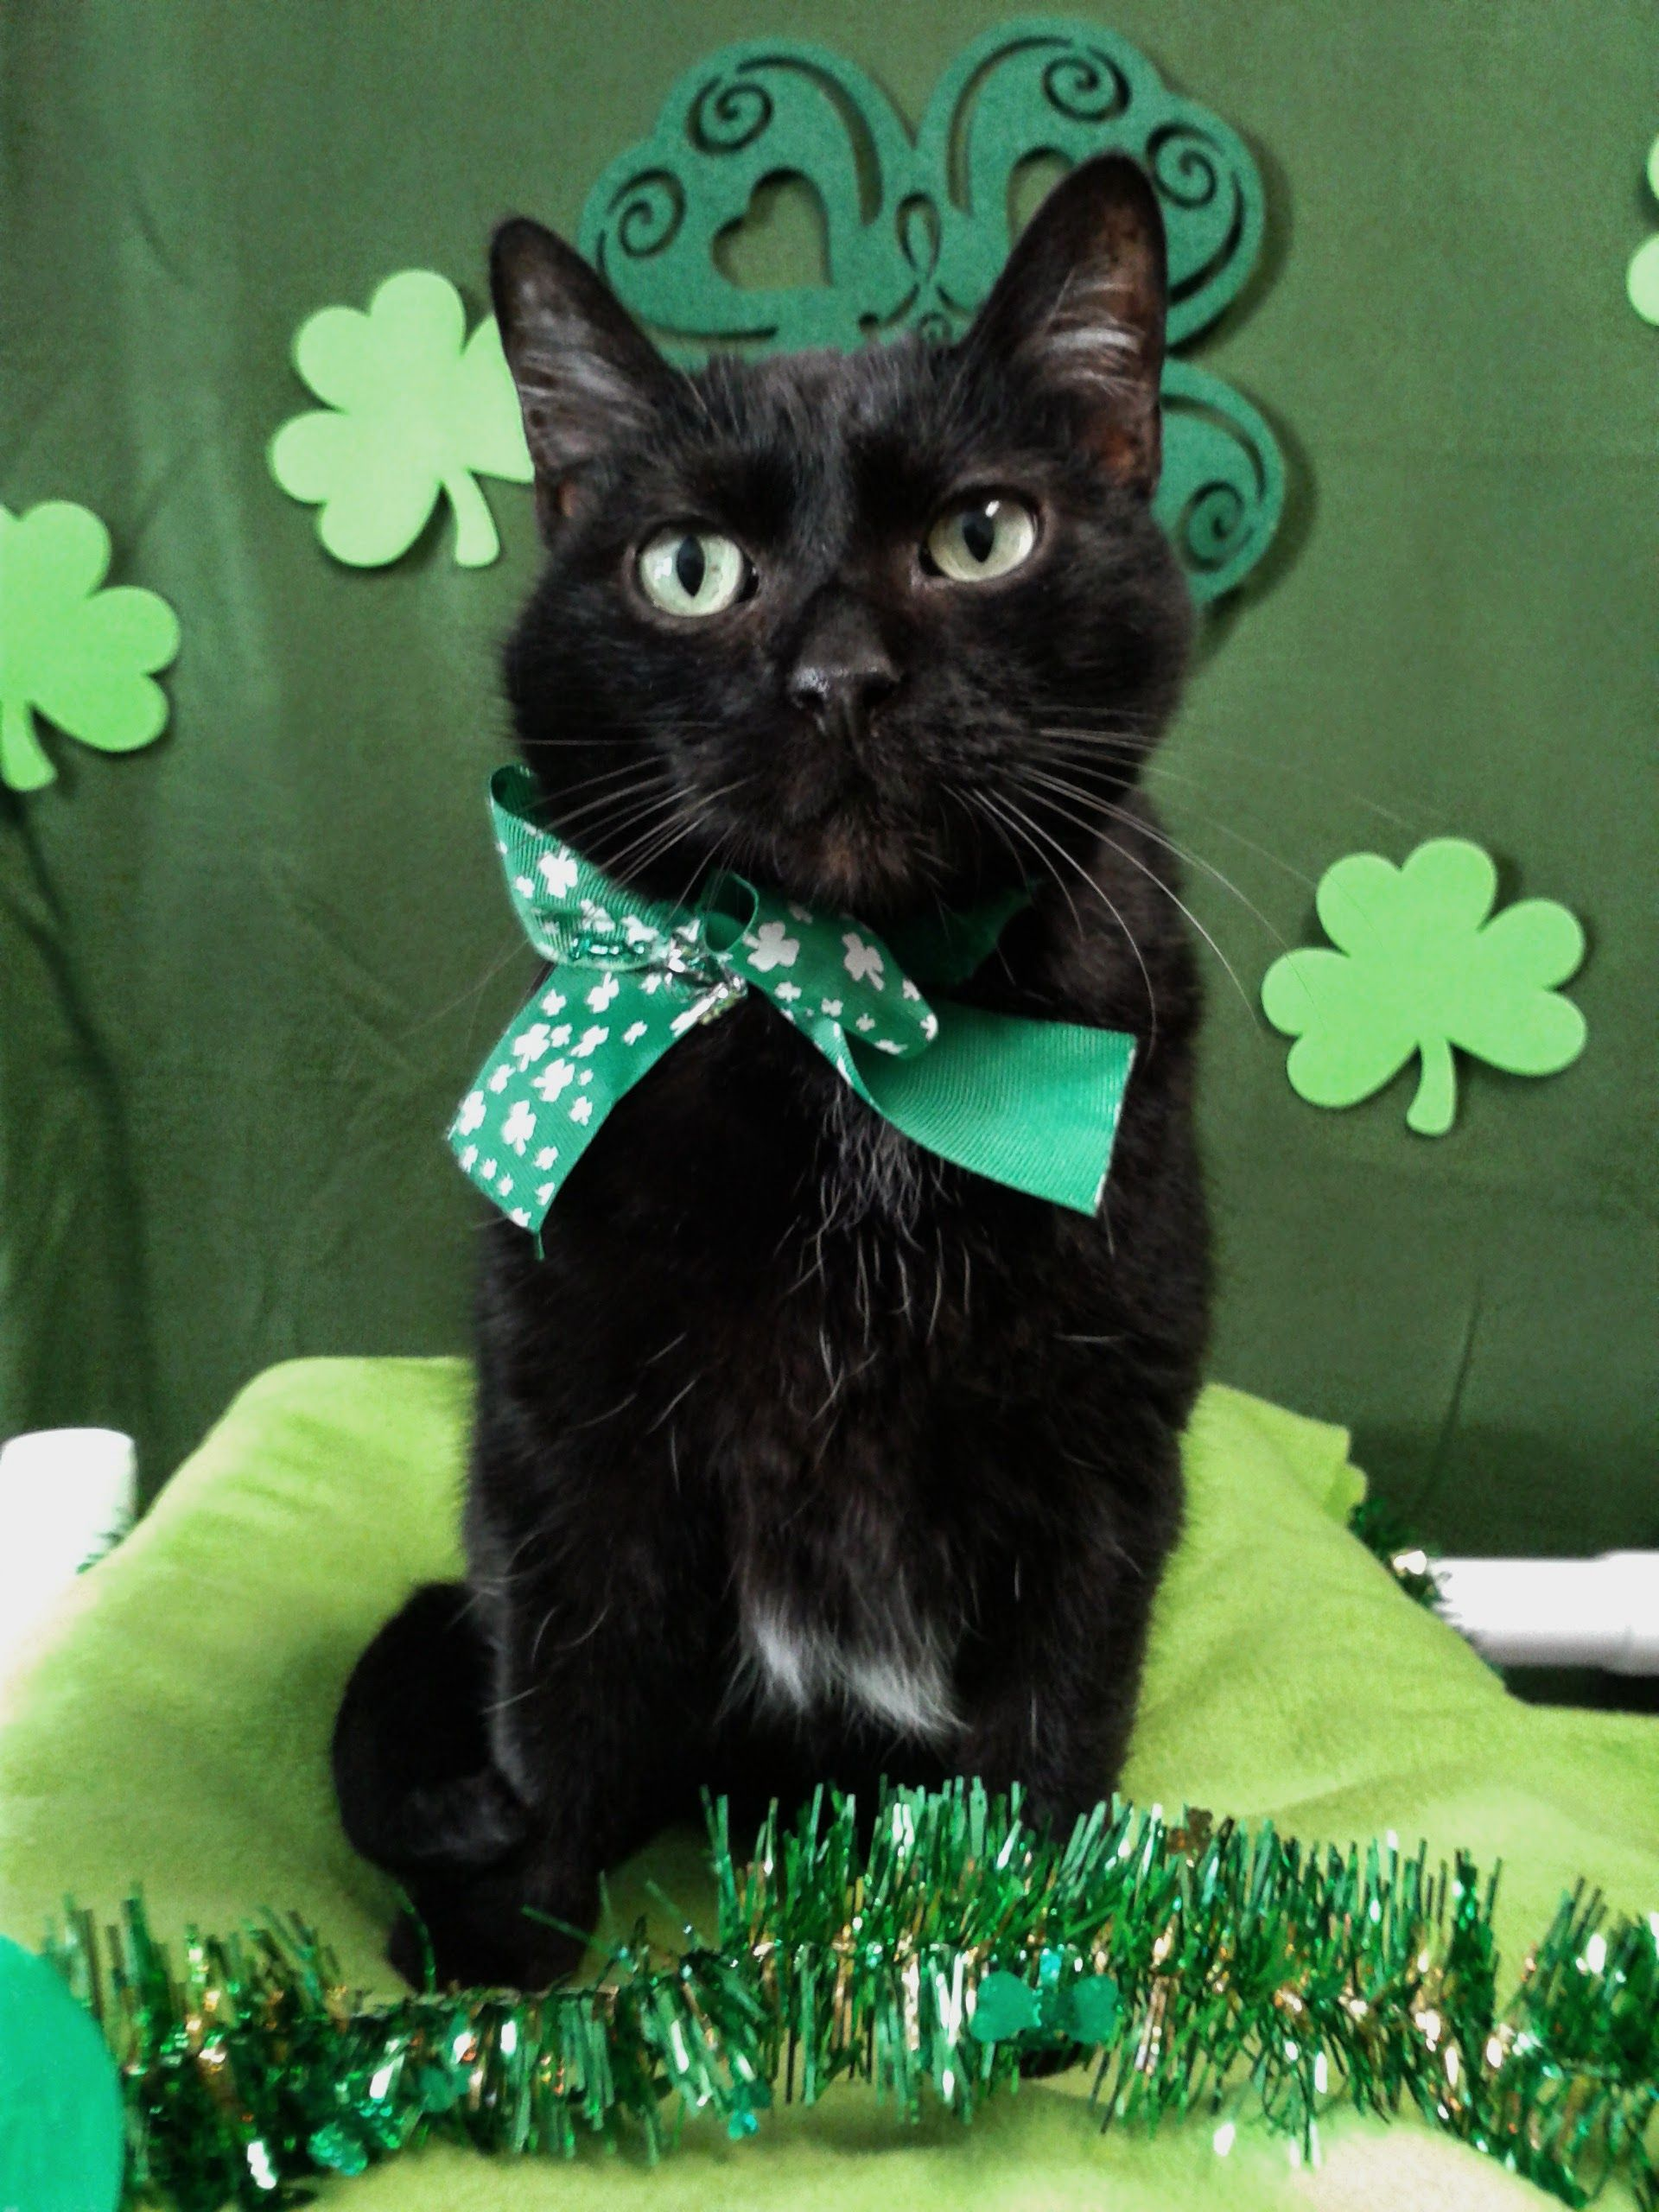 We are all Irish on St. Patrick's day! Cats, Cat